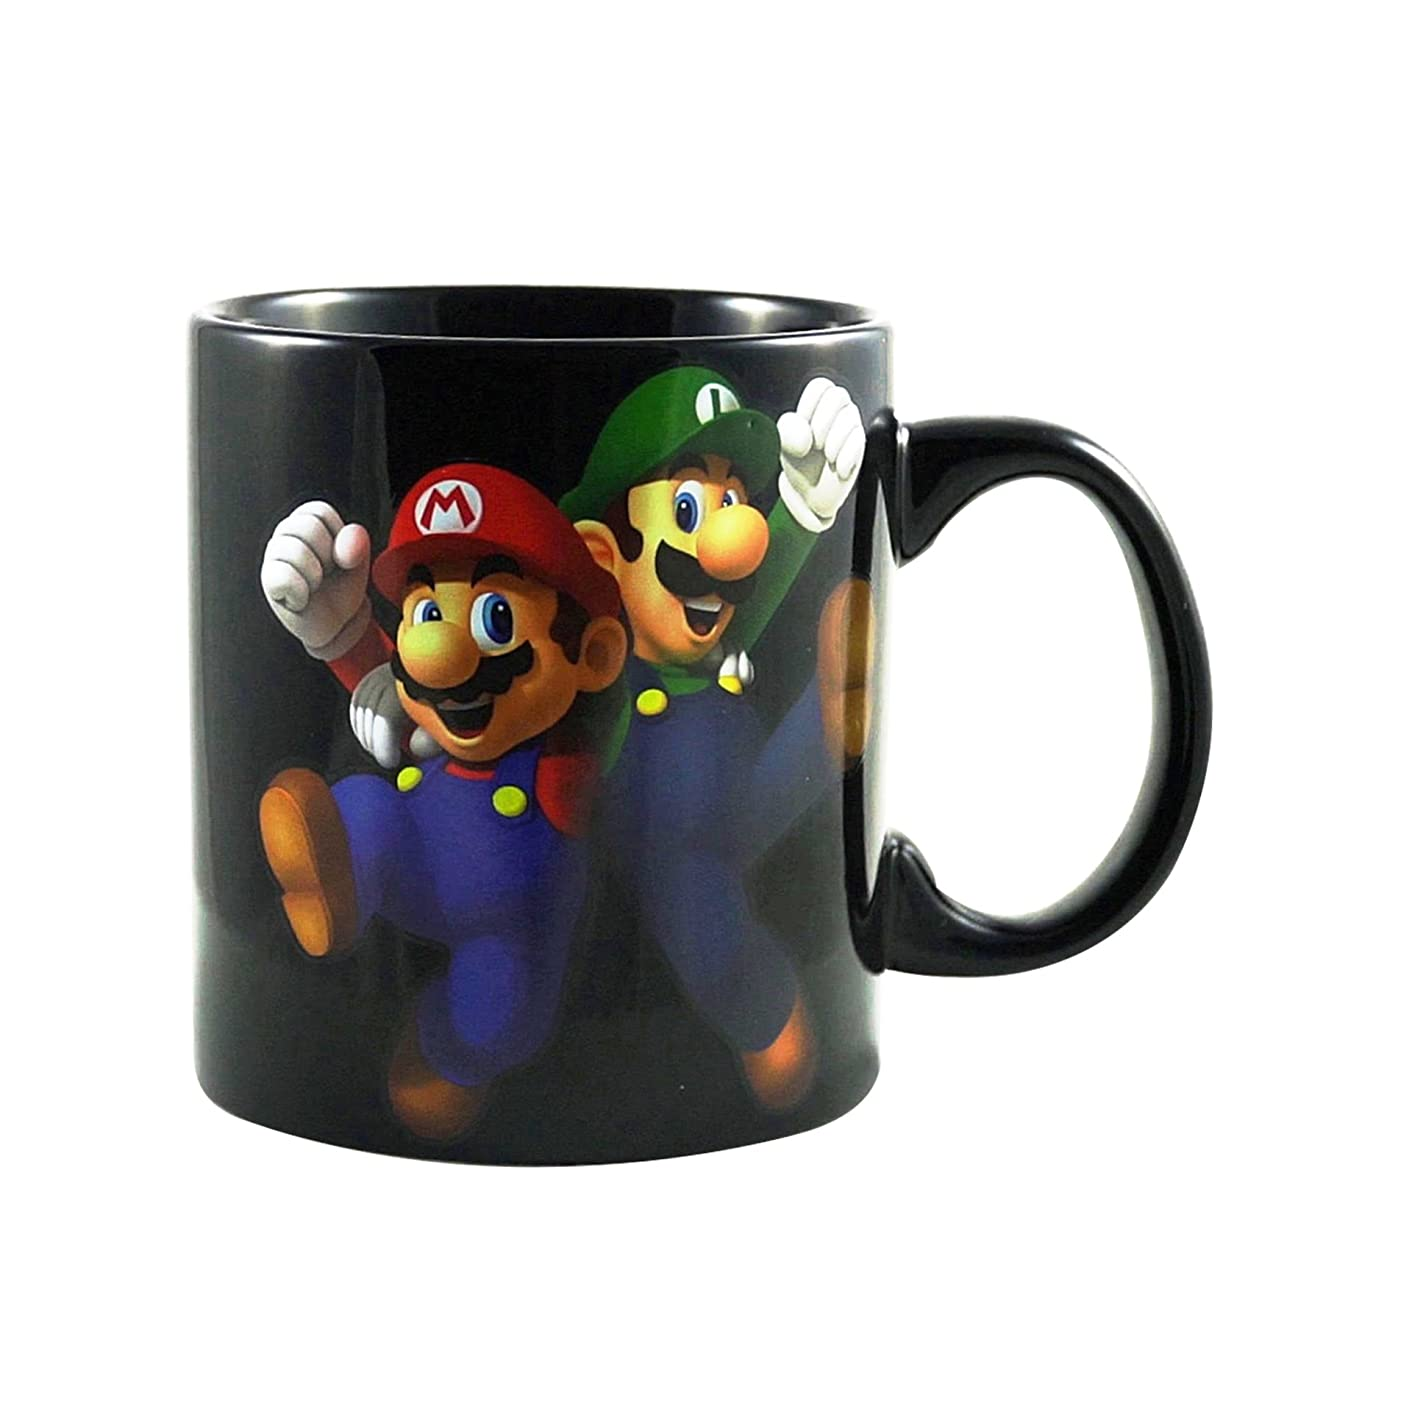 Super Mario Bros. Card Game Ceramic PREMIUM Coffee &Tea Mug/Cup (Inner & Outer Printed) - Novelty Funny Fan Party Gift Monopoly, 20 OZ